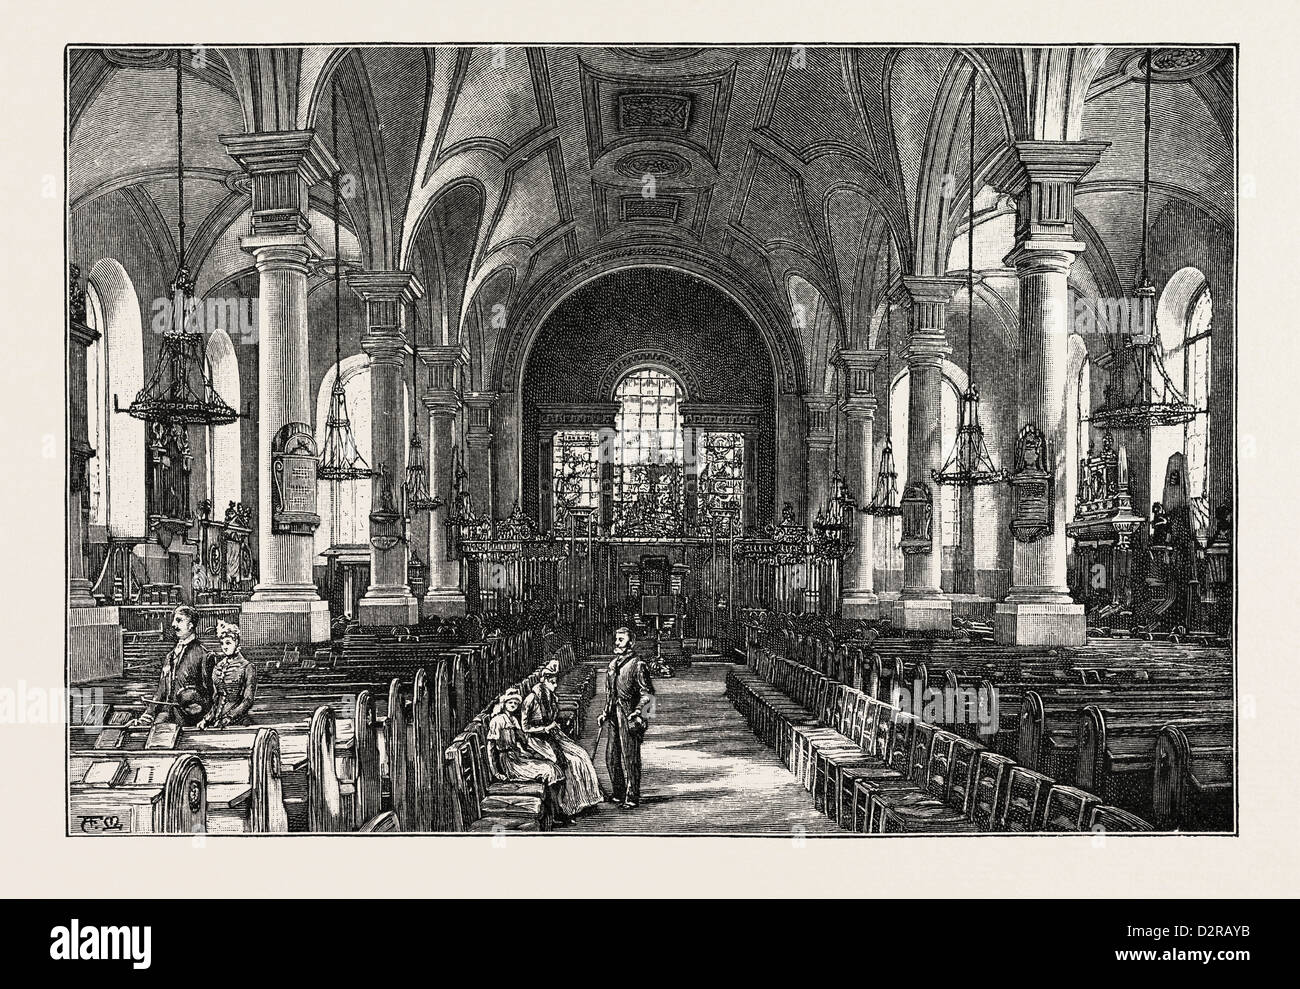 DERBY: ALL SAINTS' CHURCH, THE INTERIOR - Stock Image